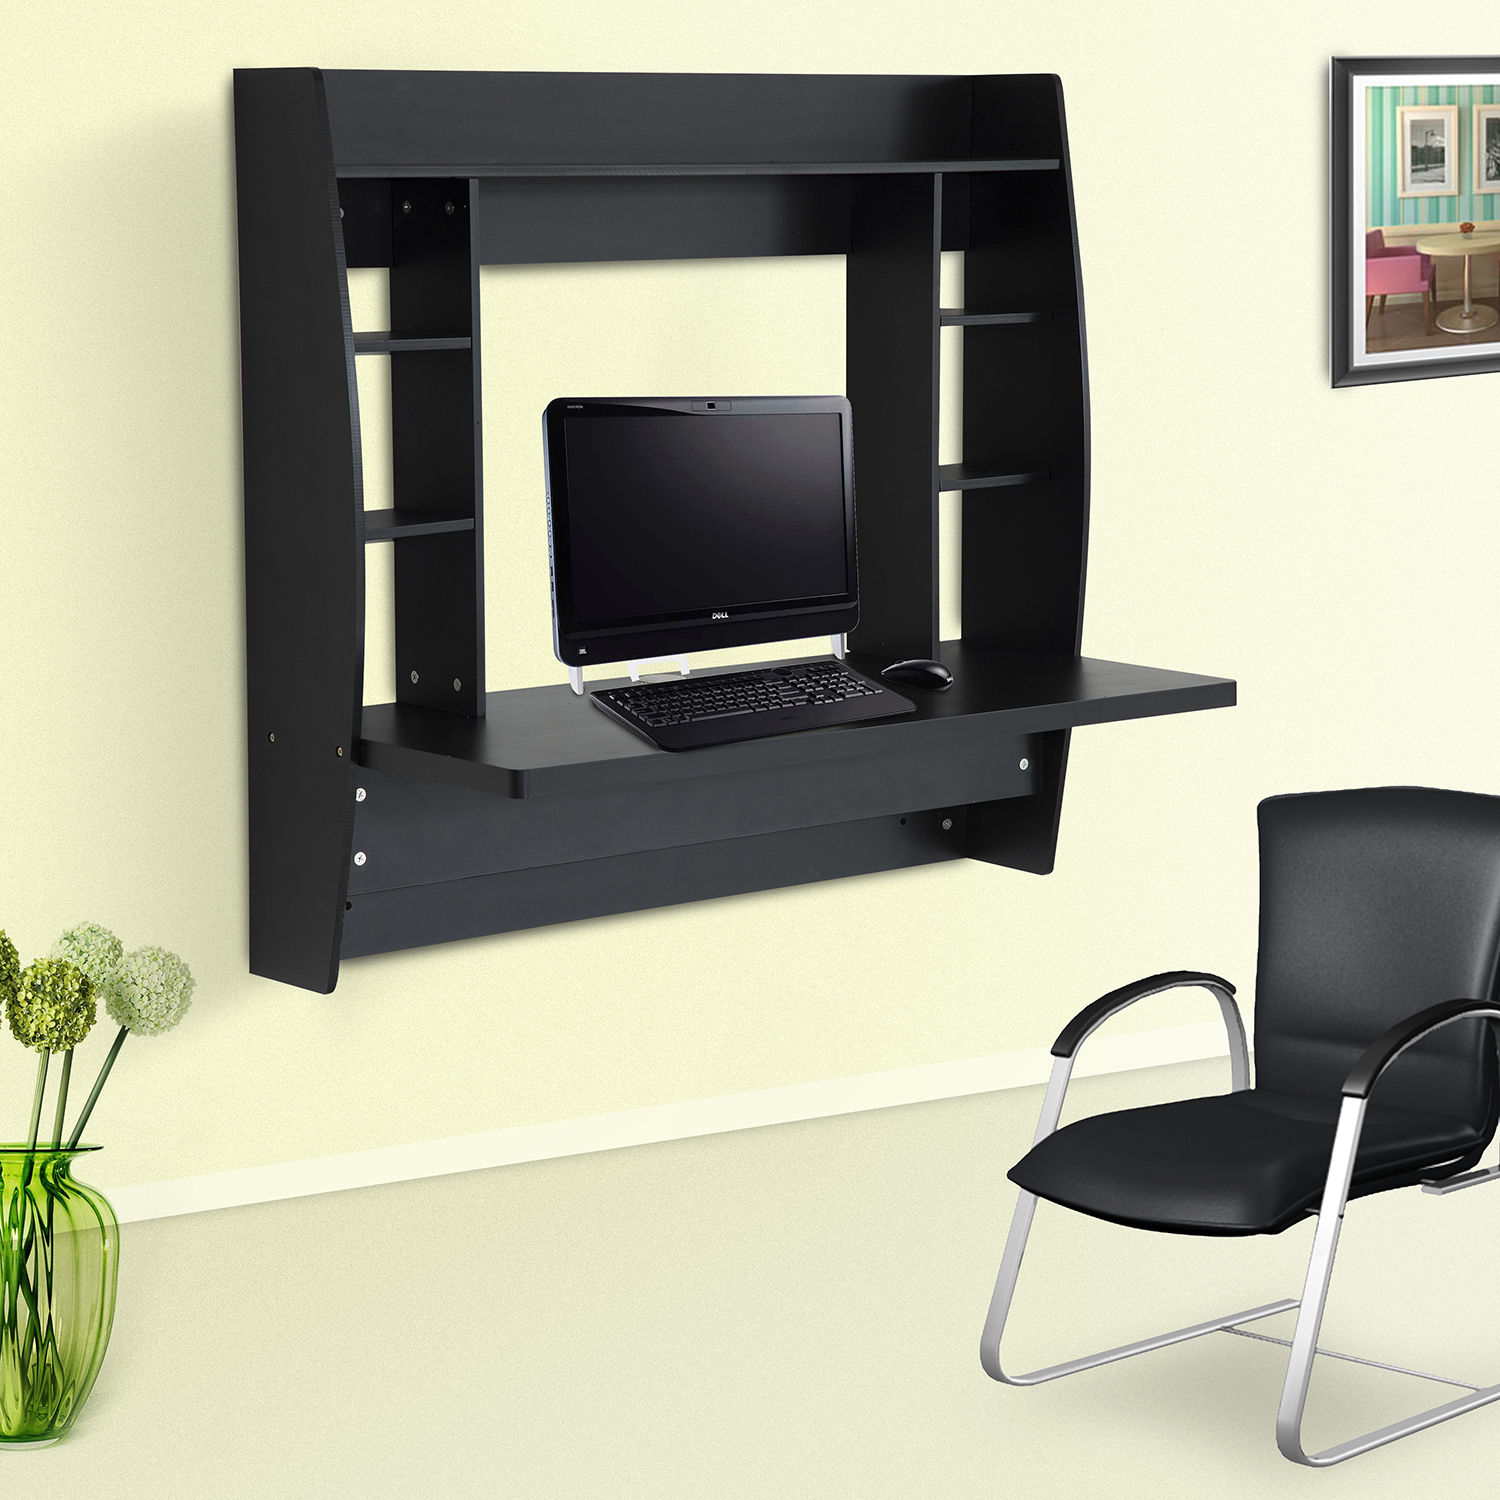 Wall Mount Office Desk Homcom Floating Wall Mount Office Computer Desk With